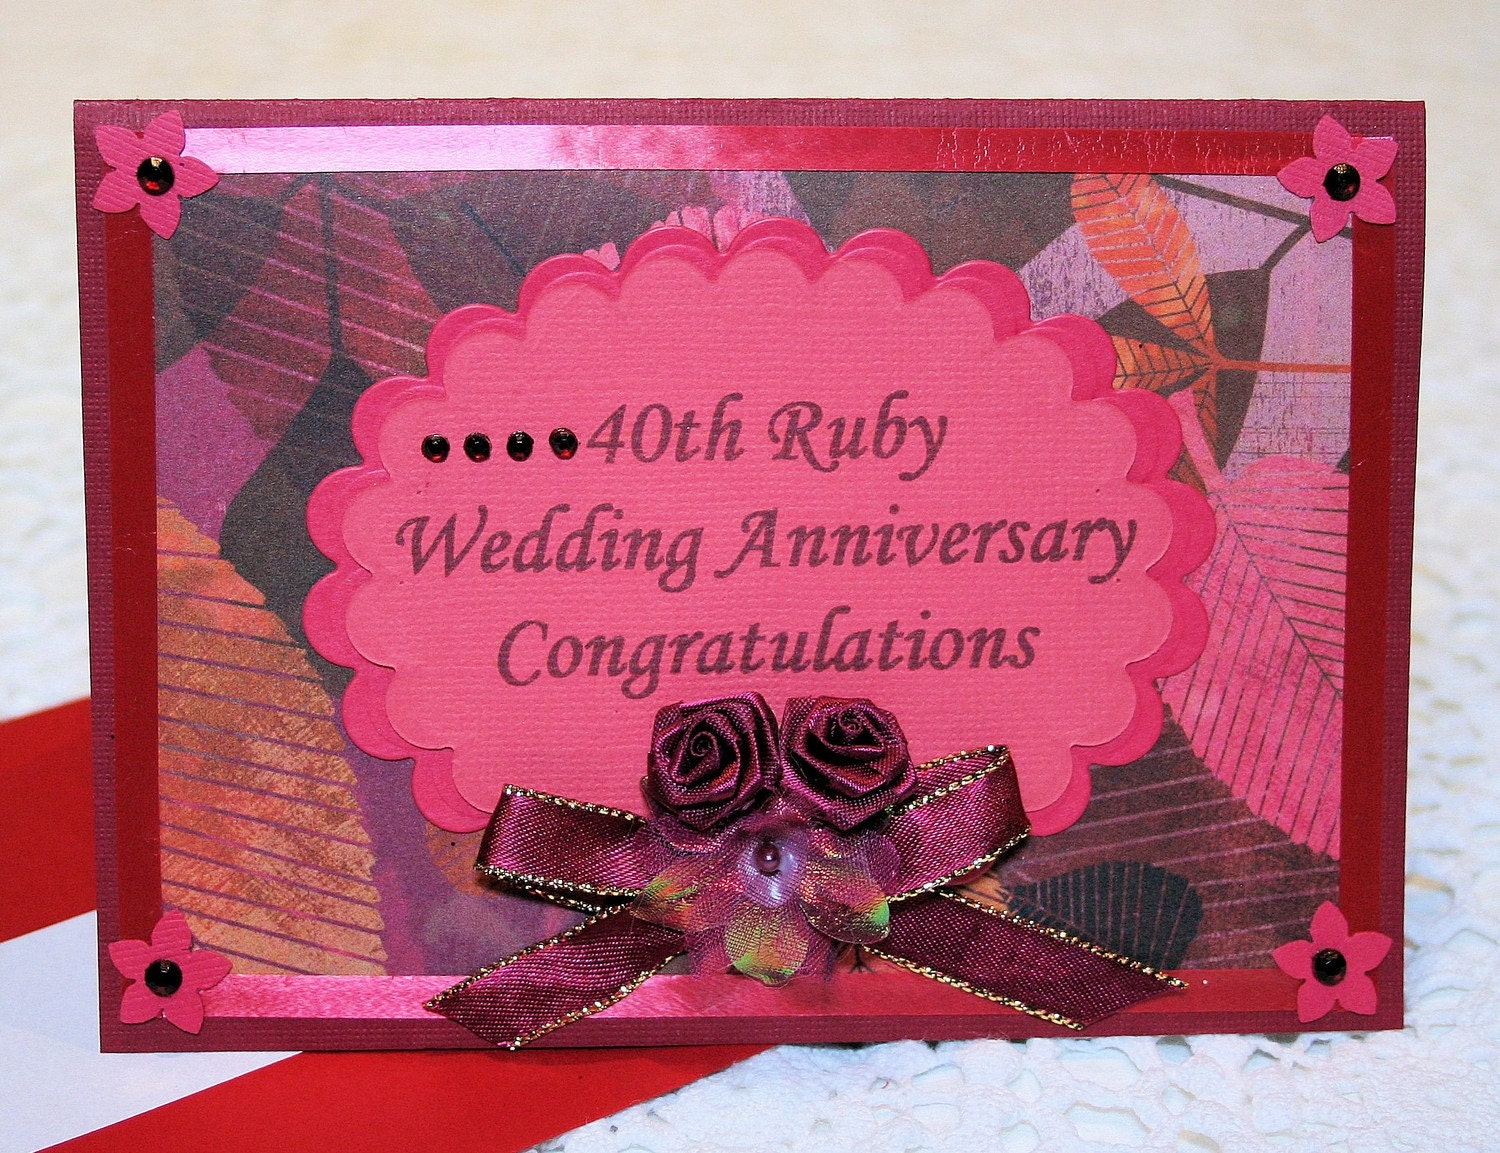 40th ruby wedding anniversary congratulatory card. Black Bedroom Furniture Sets. Home Design Ideas